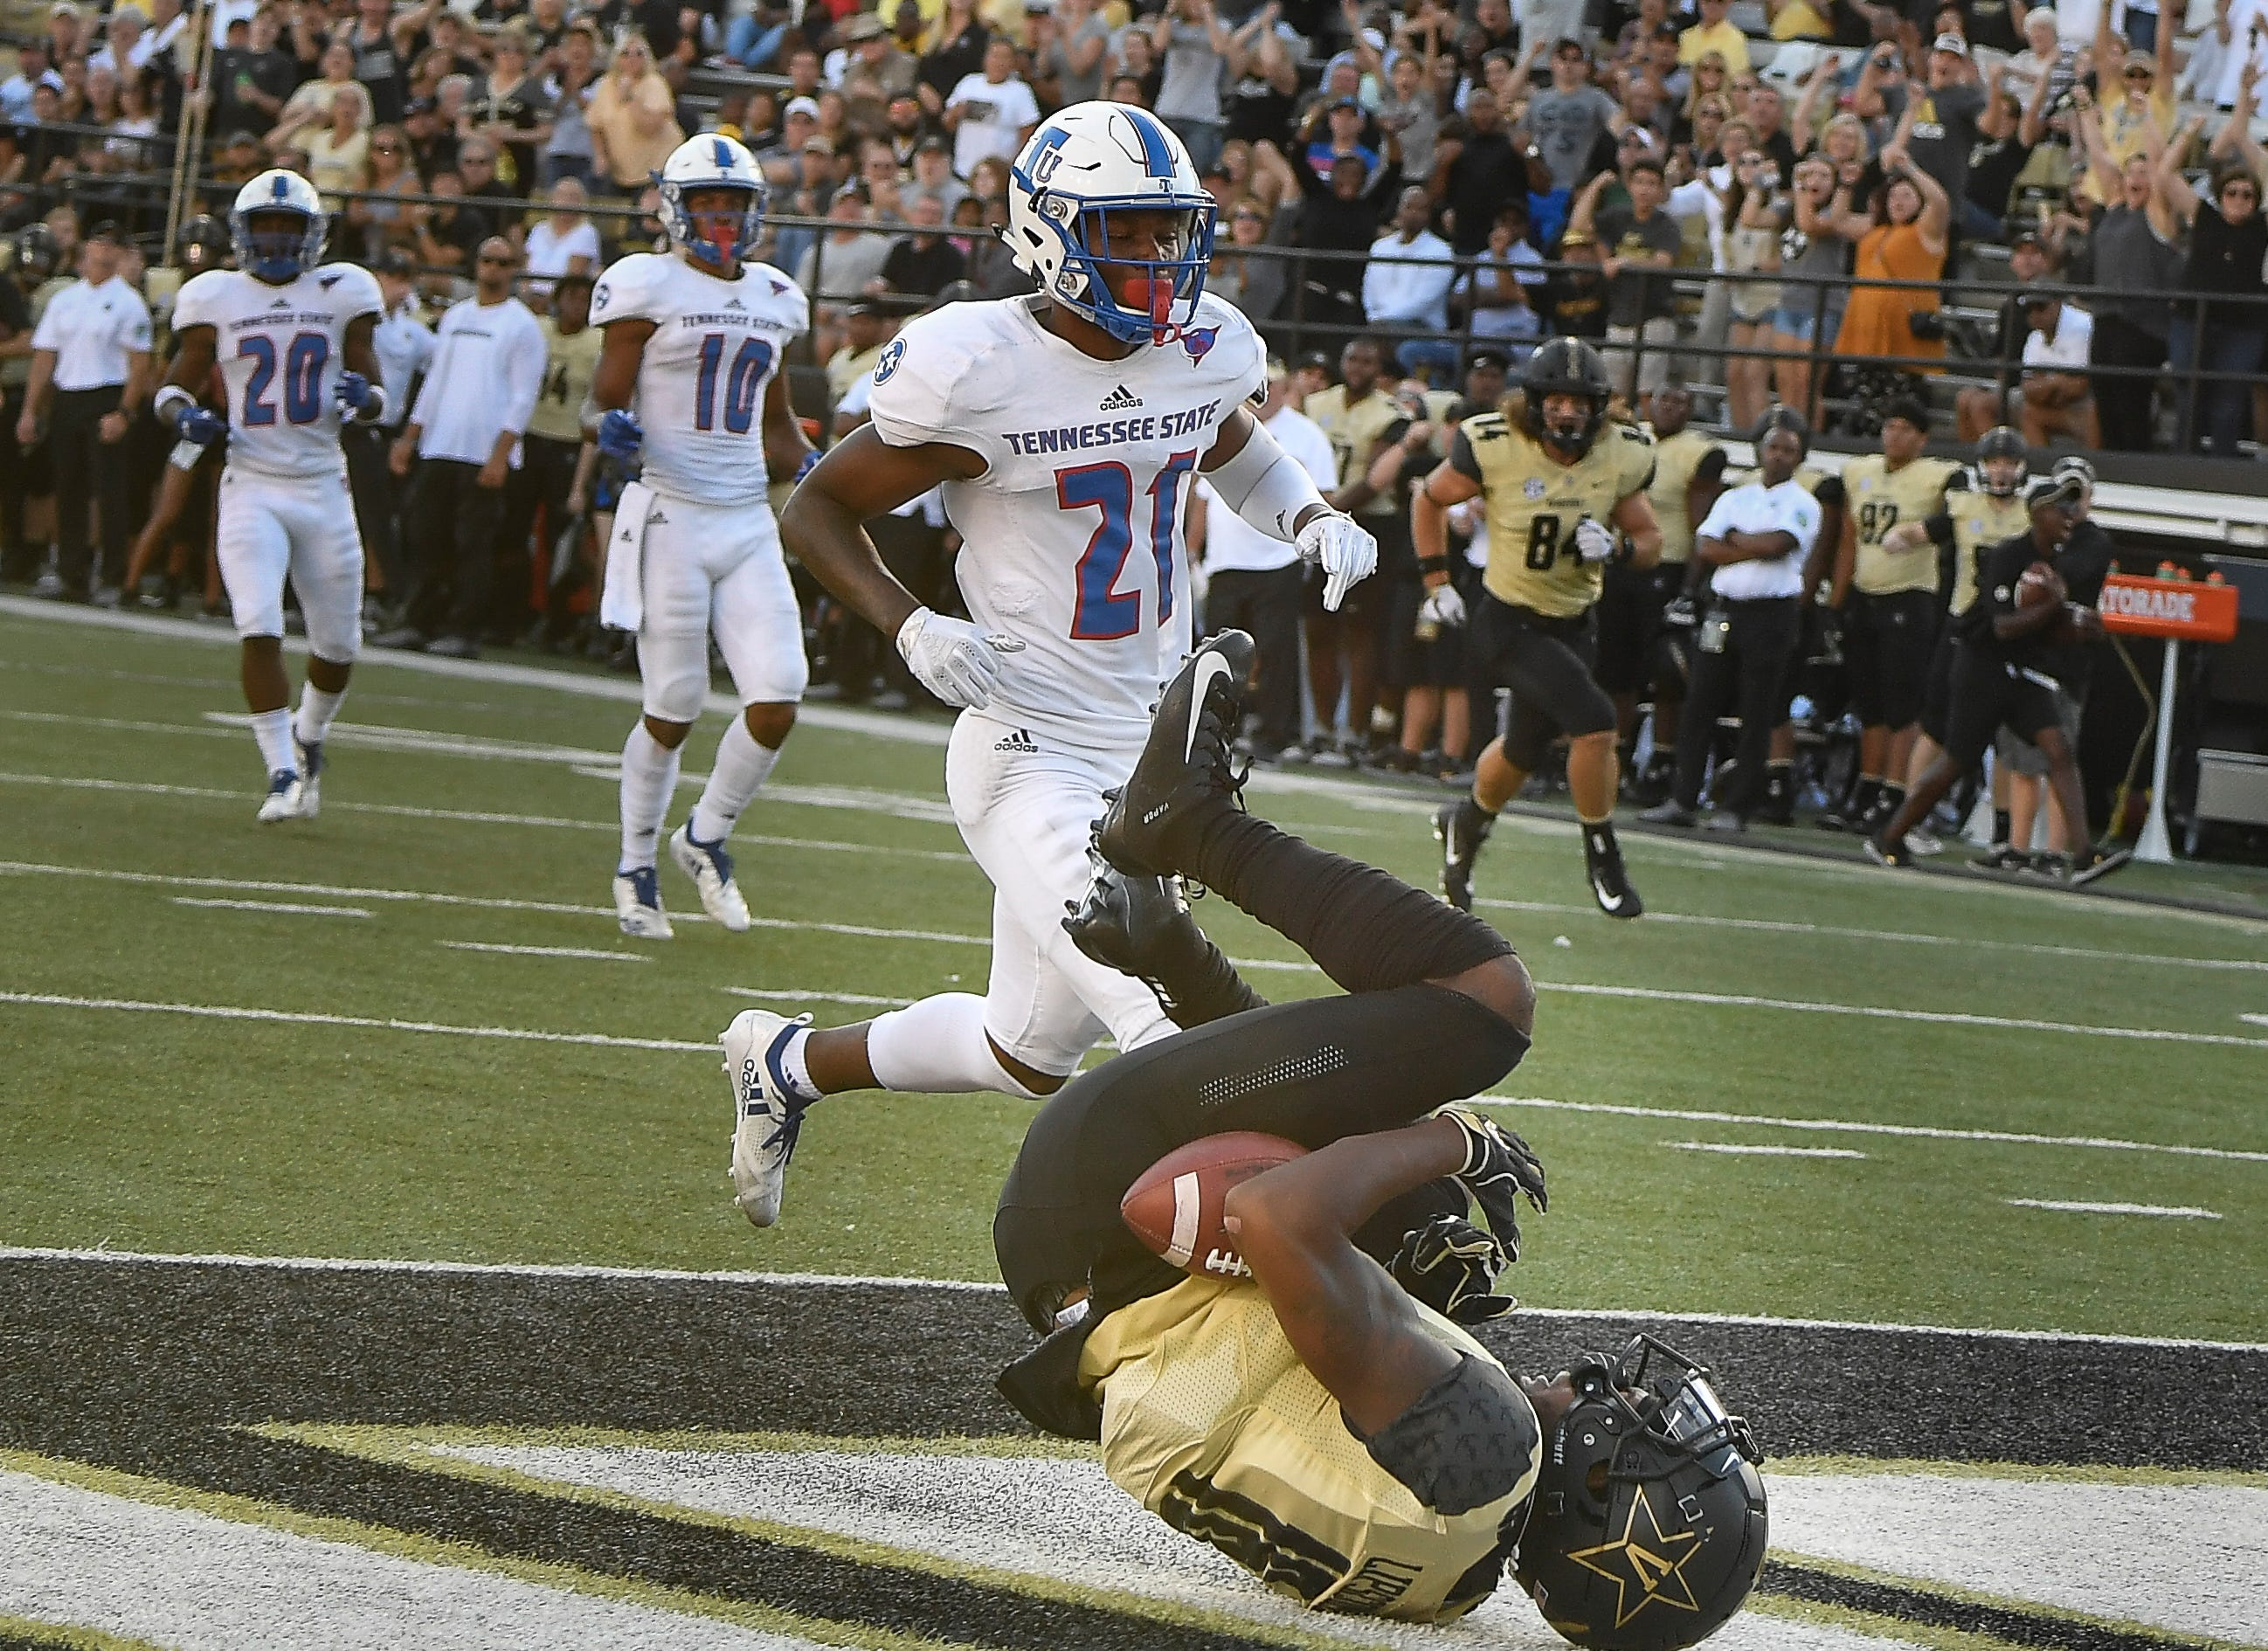 Vanderbilt wide receiver Kalija Lipscomb (16) falls into the end zone with a touchdown catch past TSU cornerback Neiman Armstrong (21) during the third quarter at Vanderbilt Stadium Saturday, Sept. 29, 2018, in Nashville, Tenn.